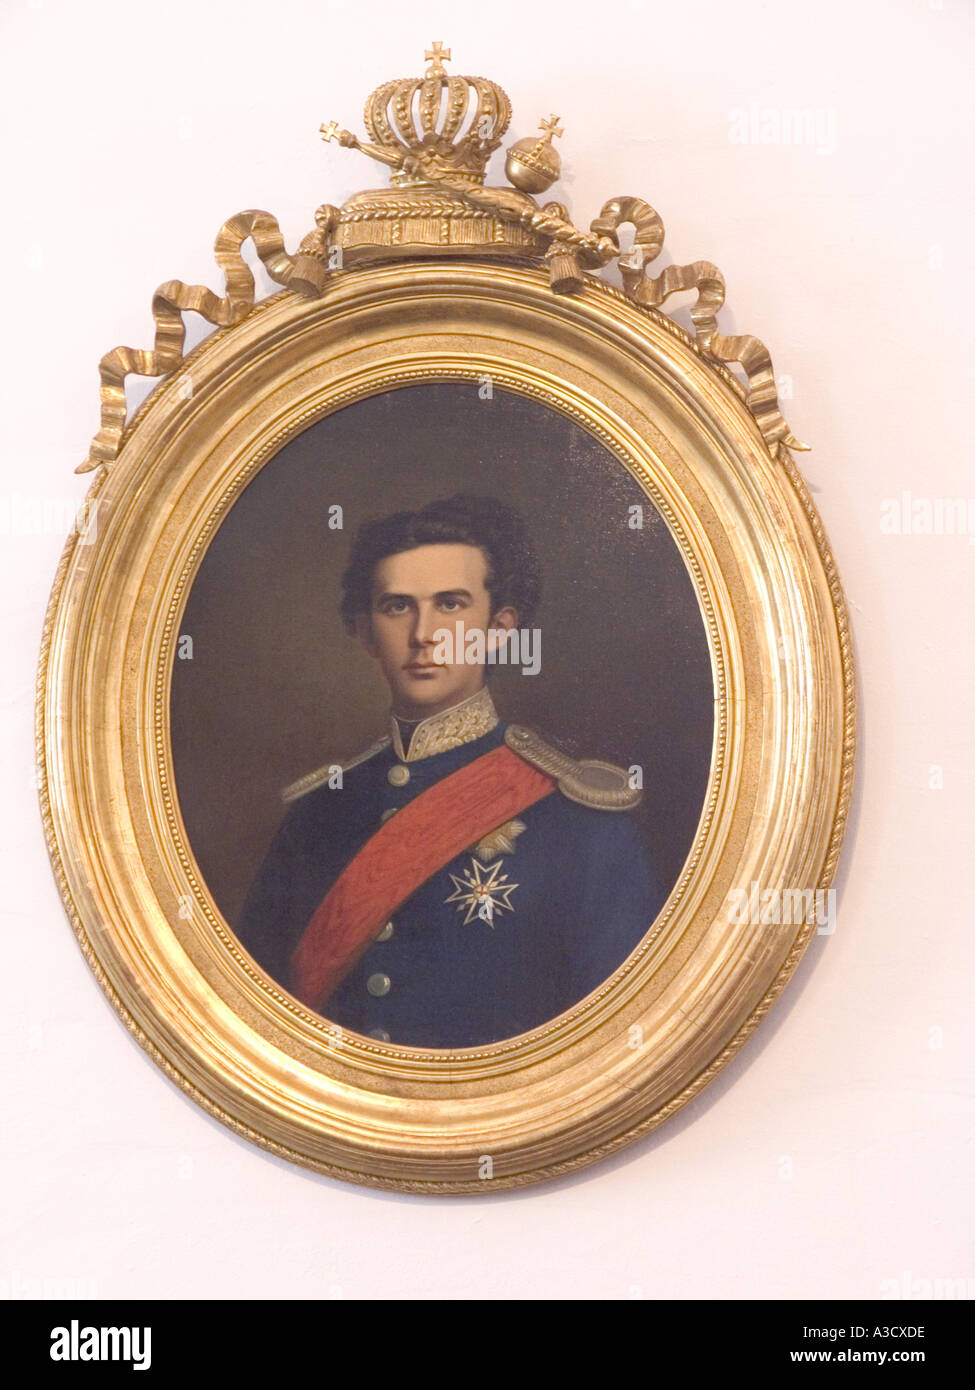 Portrait of King Ludwig II the second bavaria bayern kingdom german germany europe noble picture  - Stock Image